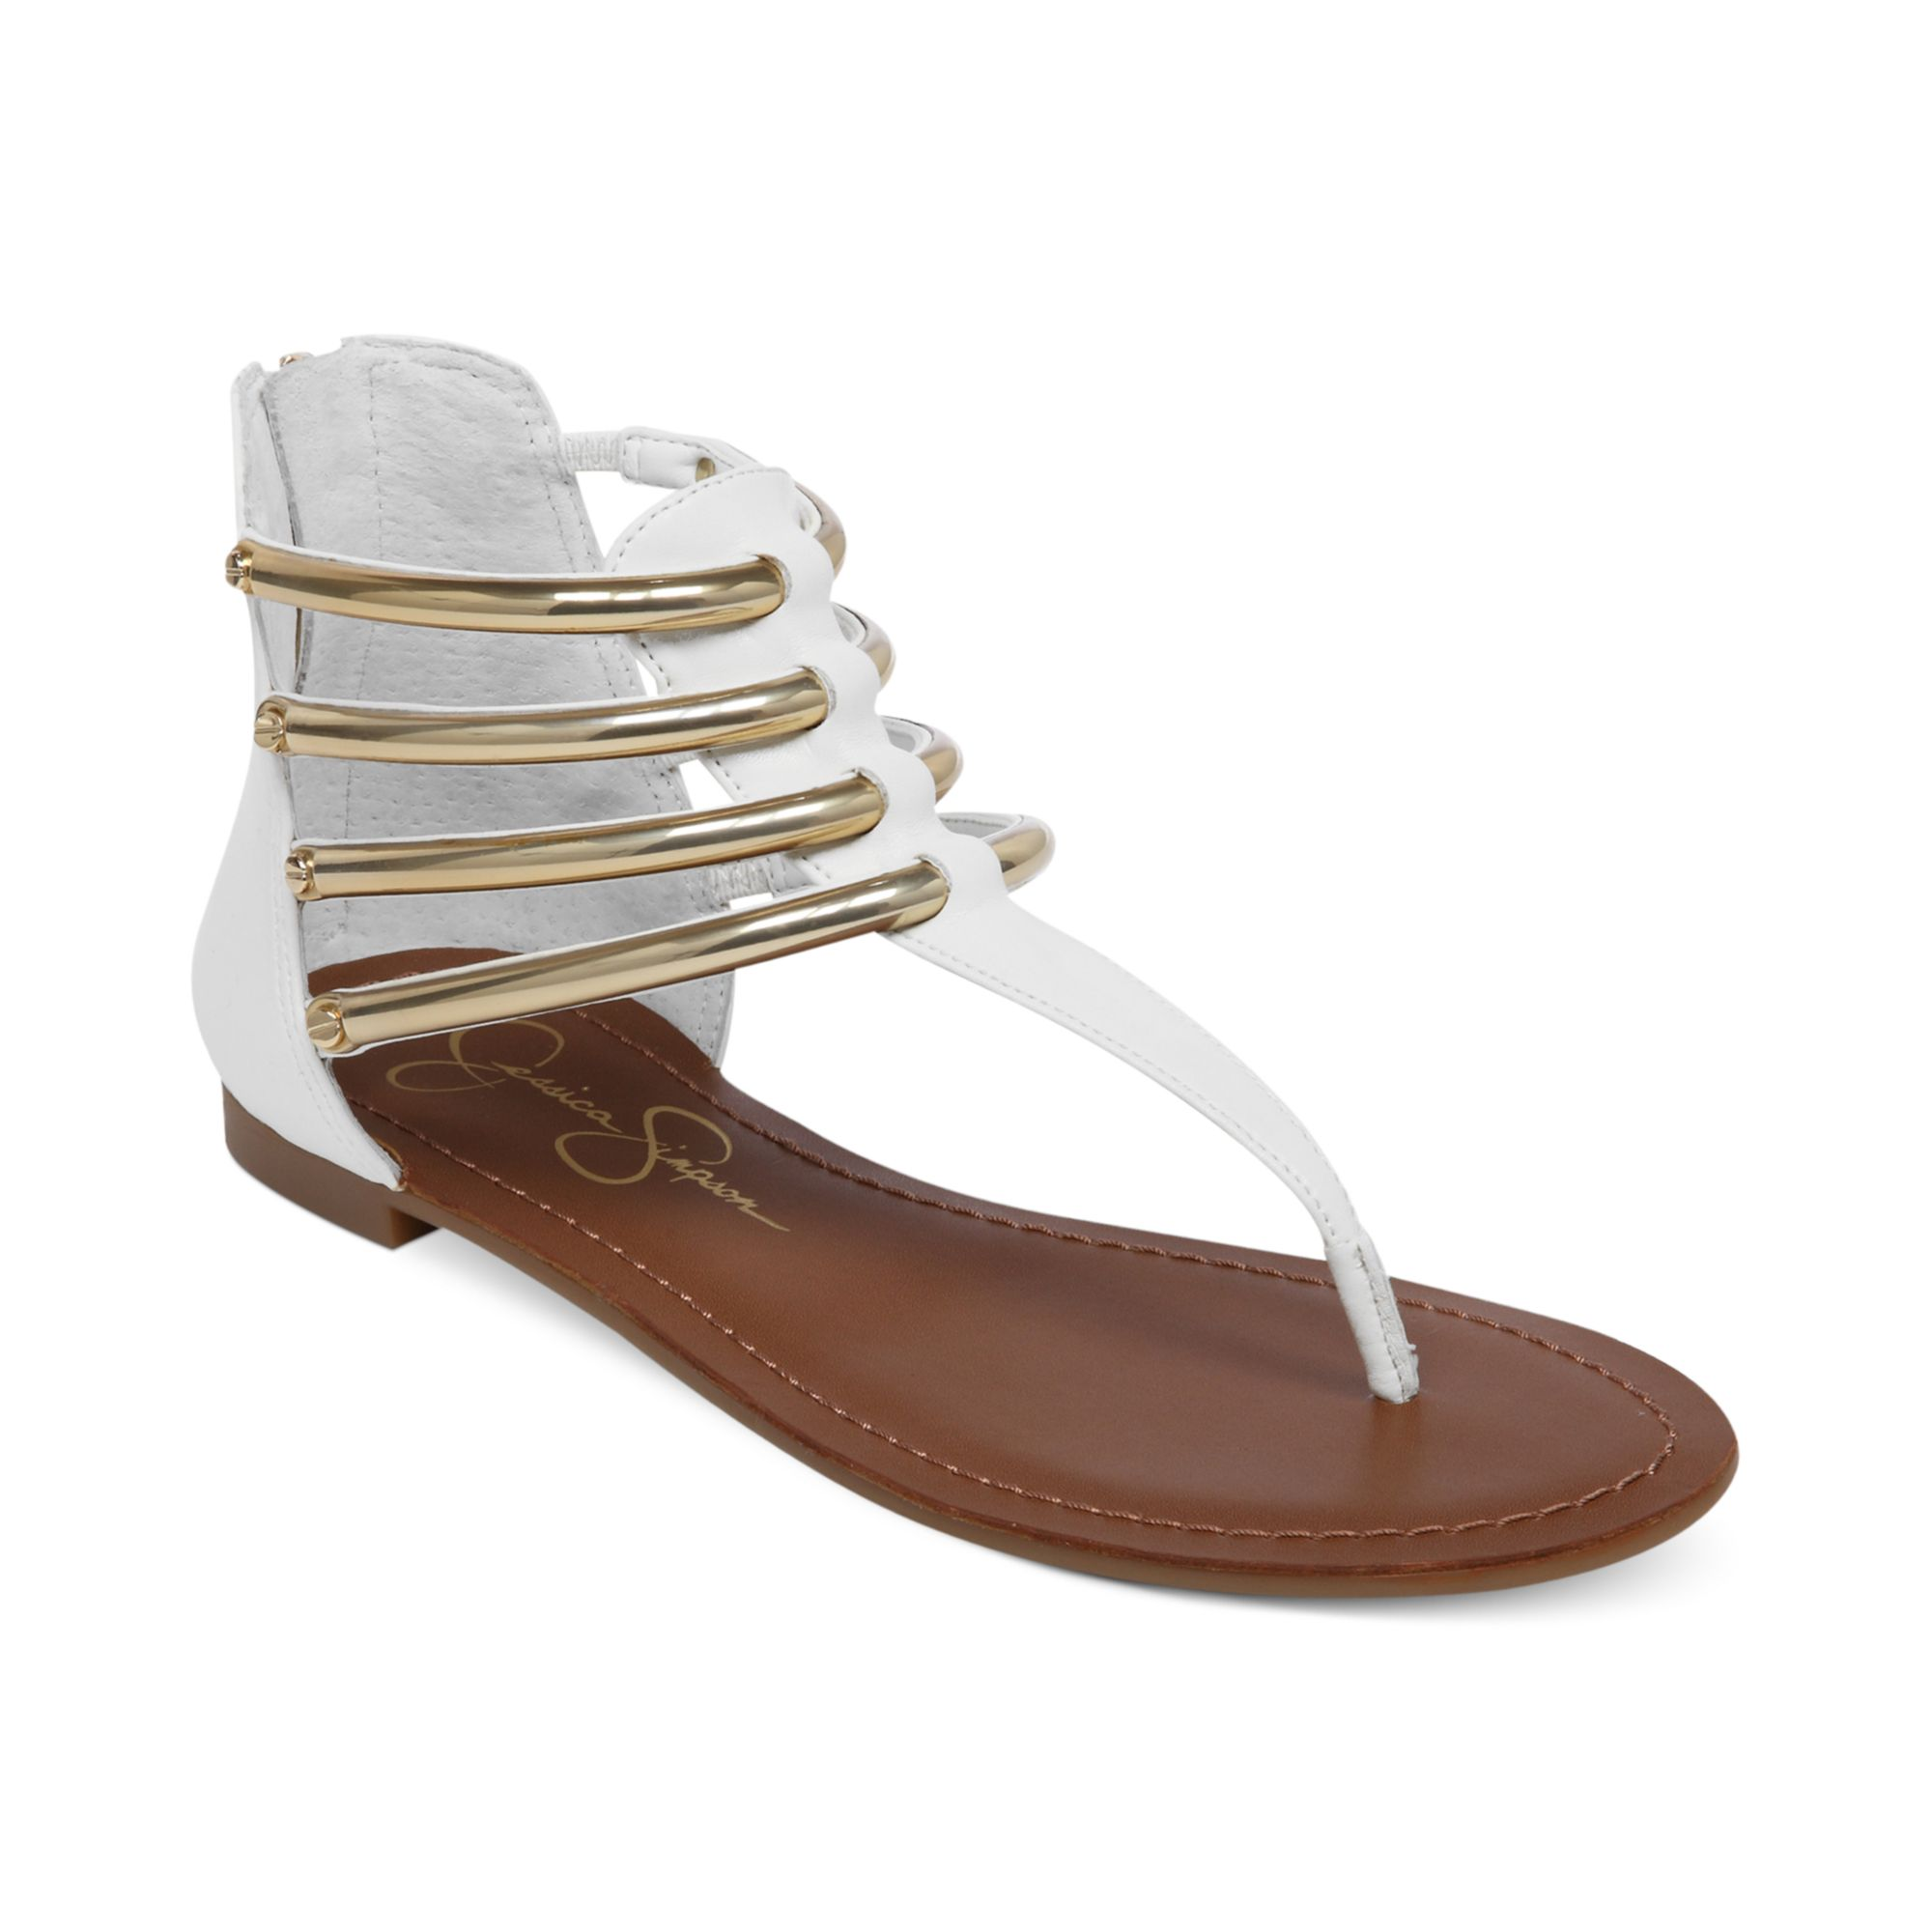 c2c238164f2a Lyst - Jessica Simpson Gionara Flat Thong Sandals in White